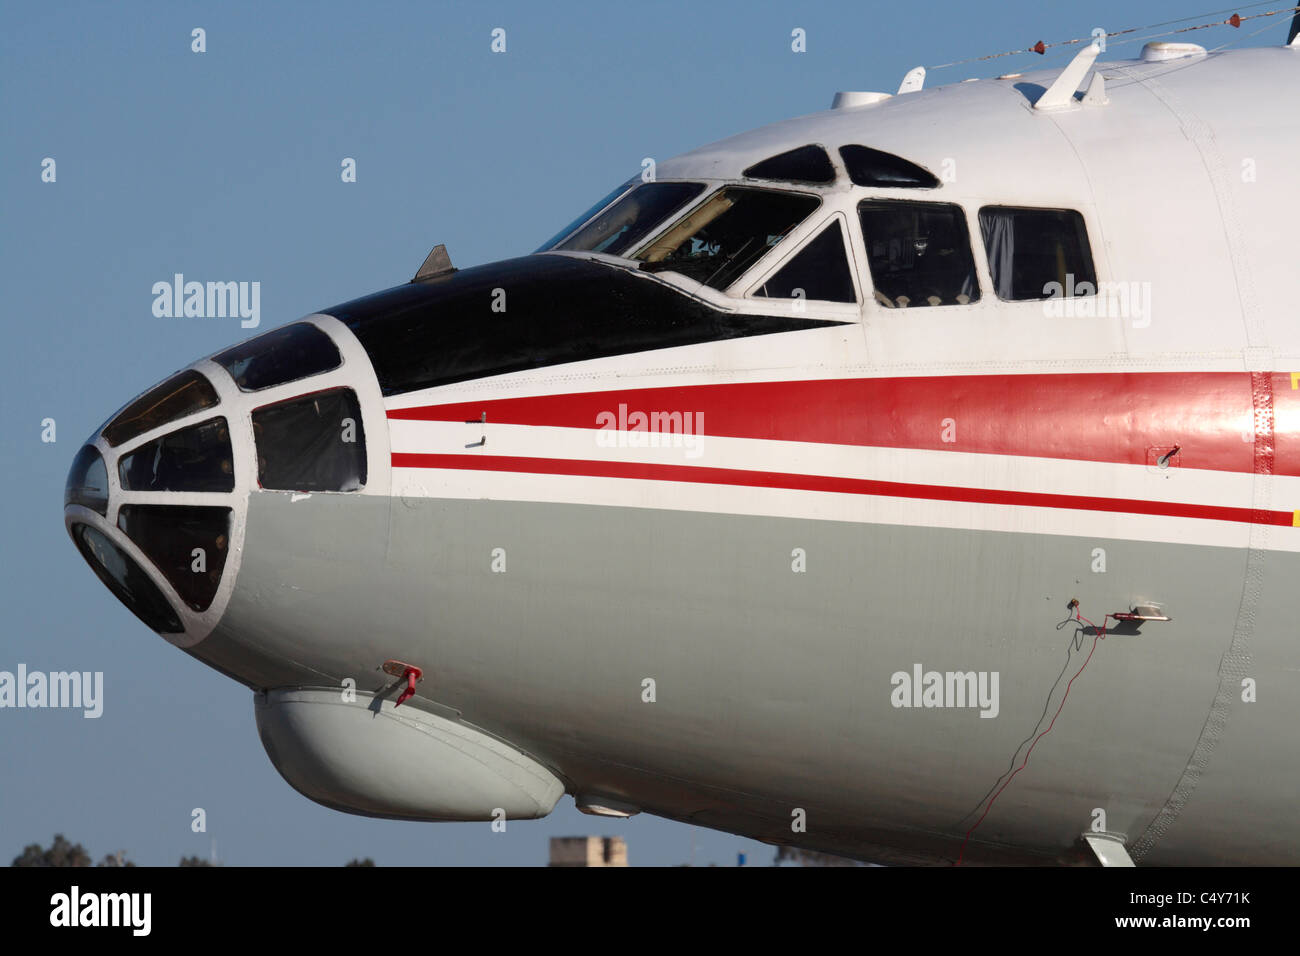 Close-up of the nose section of an Antonov An-12 cargo plane, with its strong resemblance to a World War II bomber - Stock Image